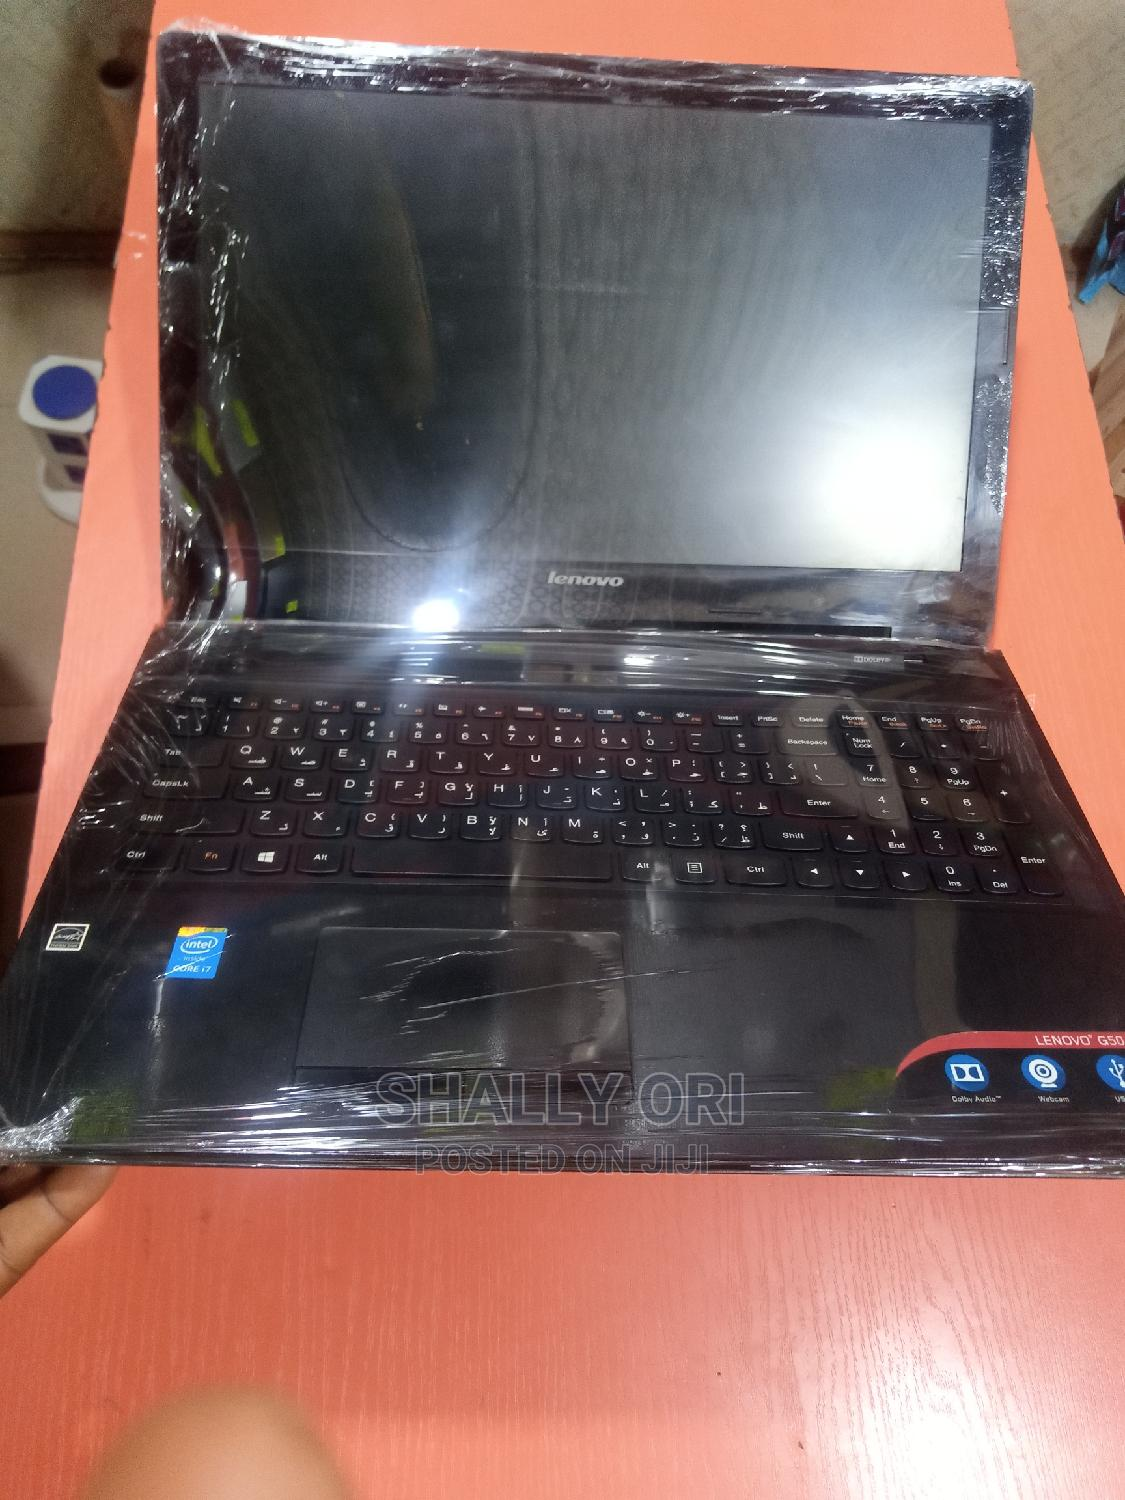 Laptop Lenovo G450 8GB Intel Core I7 HDD 1T   Laptops & Computers for sale in Kubwa, Abuja (FCT) State, Nigeria